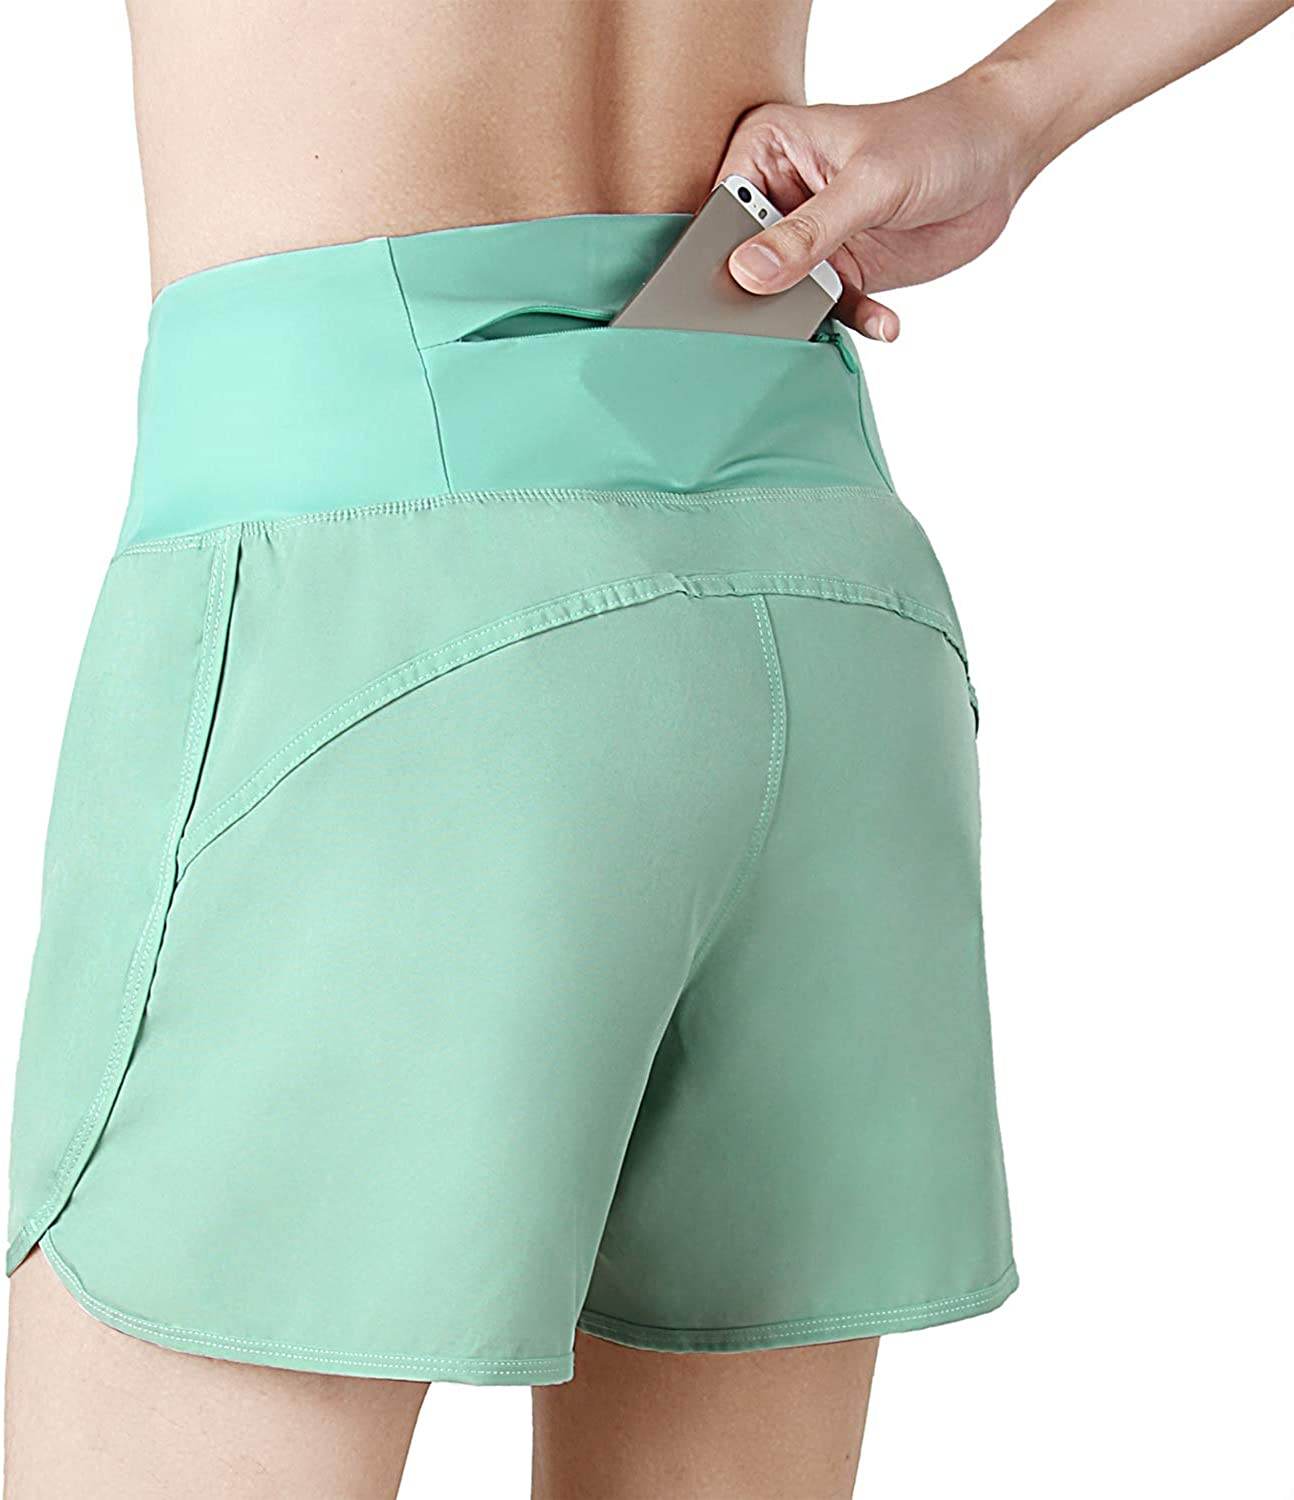 INIBUD Running Shorts for Women with Brief High Waist with Pocket Workout Athletic Yoga 4 Inches